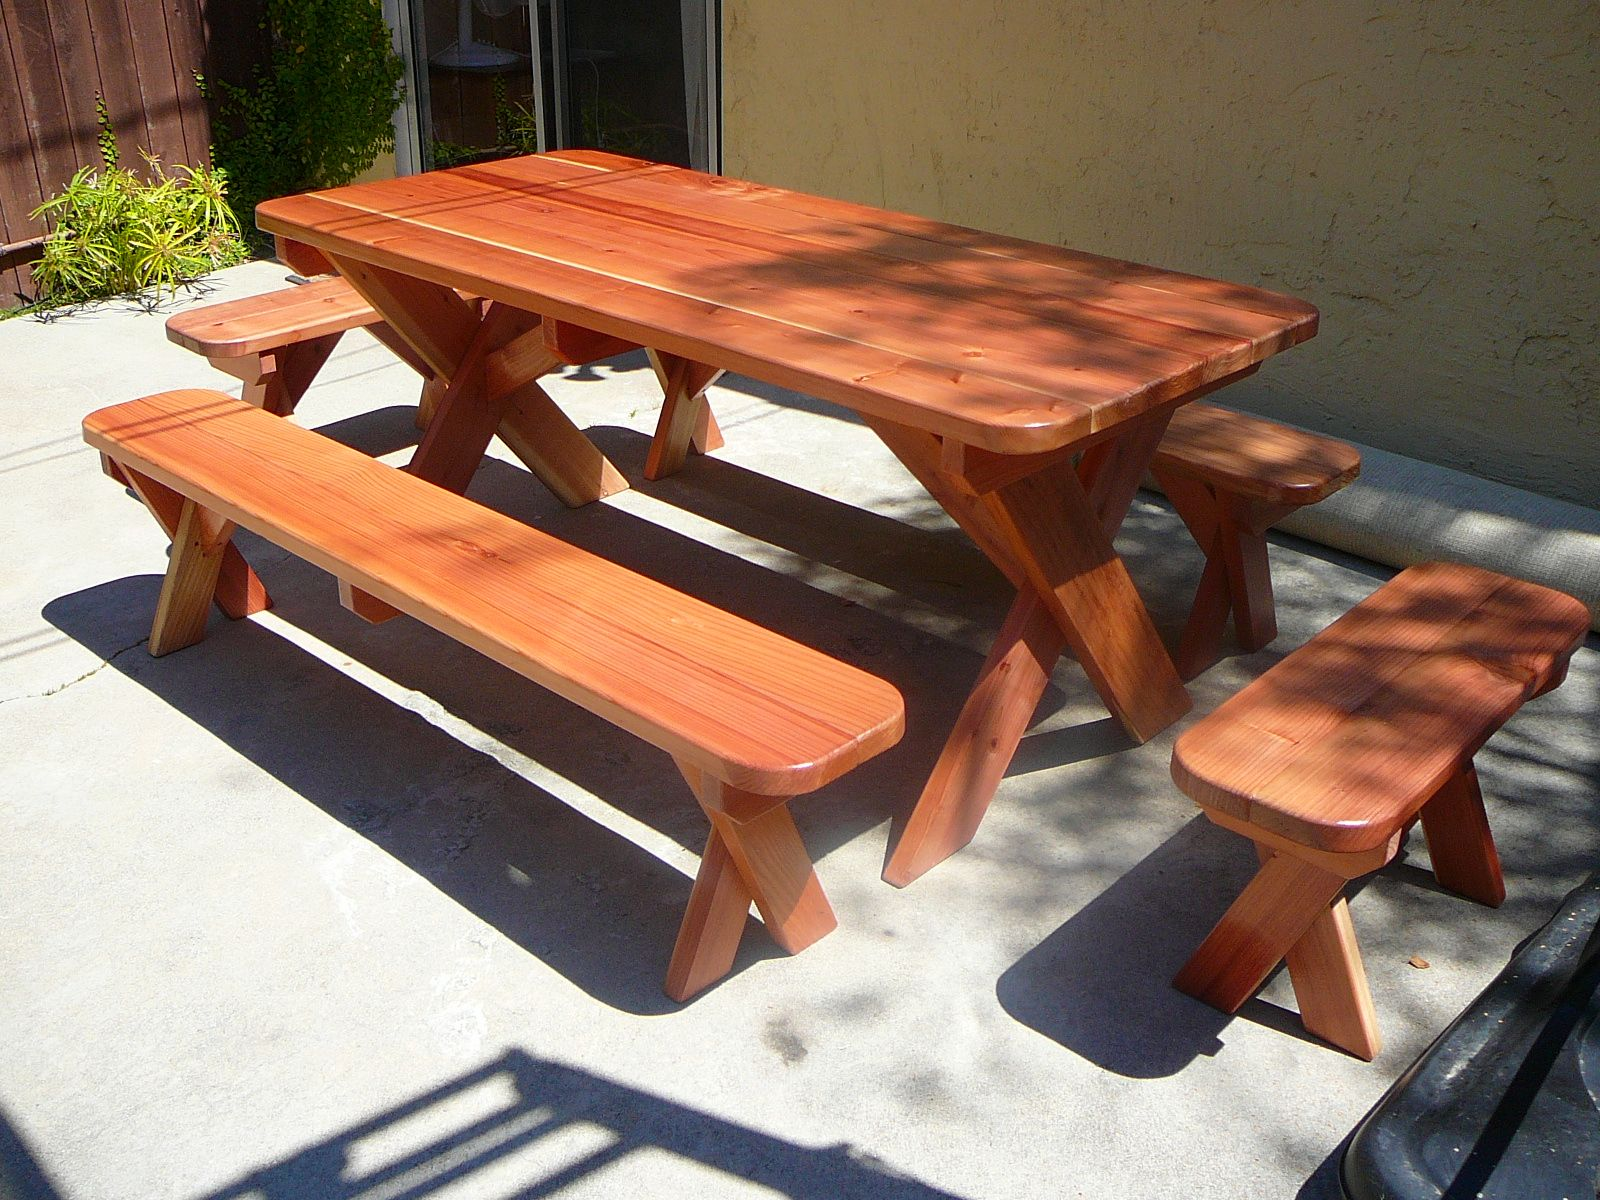 Picnic Table Bench Plans 6ft Redwood Picnic Table And 4